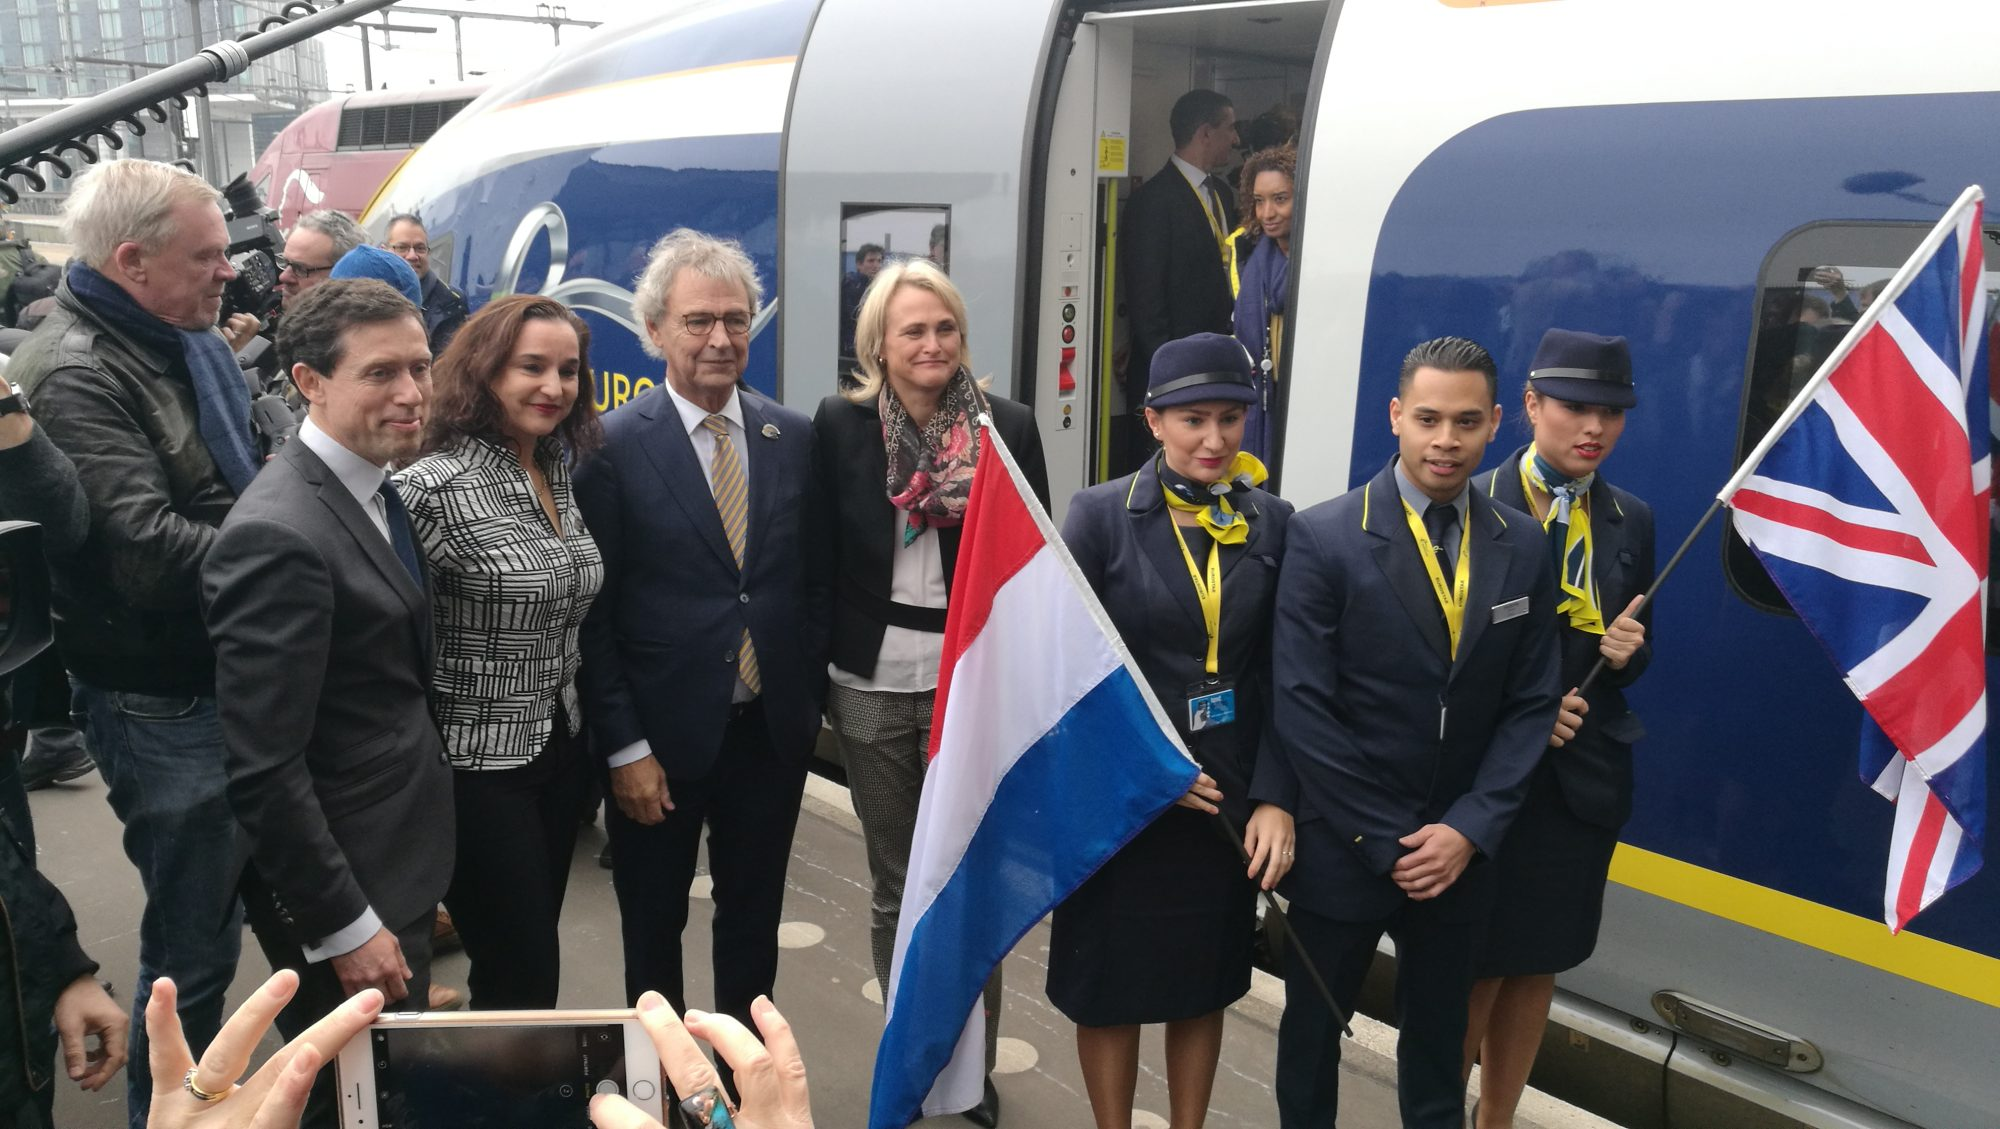 Eurostar was greeted by a crowd of hundreds of people at Amsterdam Centraal station.